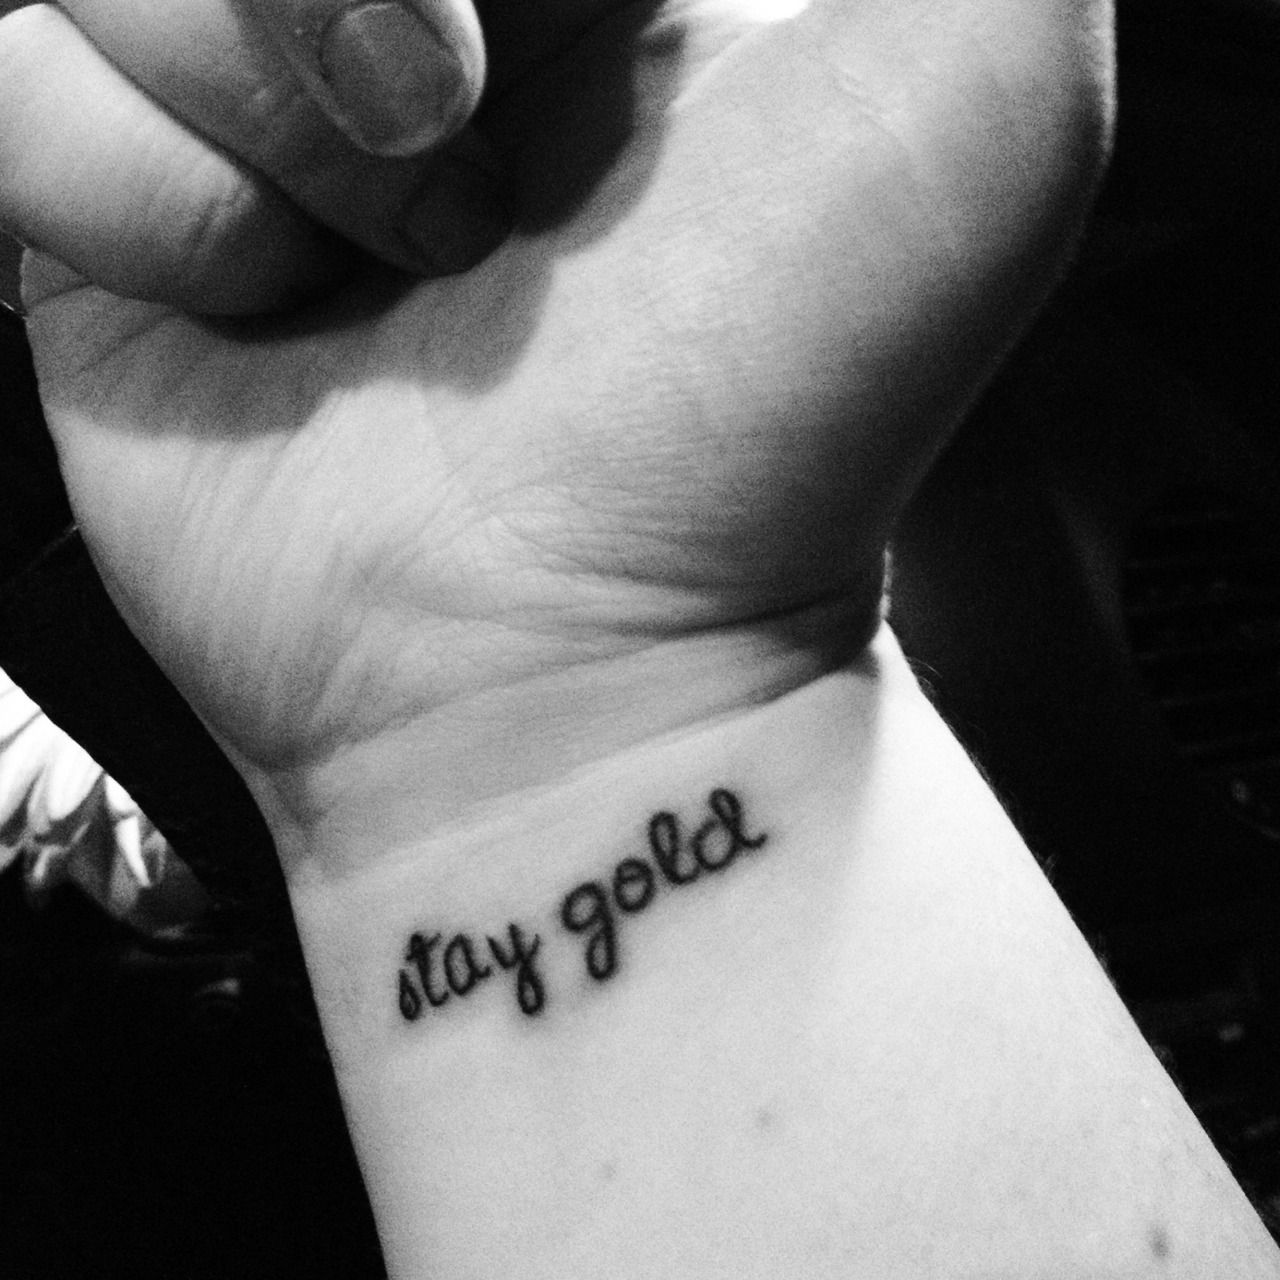 The Word Made Flesh Photo Stay Gold Tattoo Meaningful Wrist Tattoos Literary Tattoos Check out our stay gold ponyboy selection for the very best in unique or custom, handmade pieces from our shops. wrist tattoos